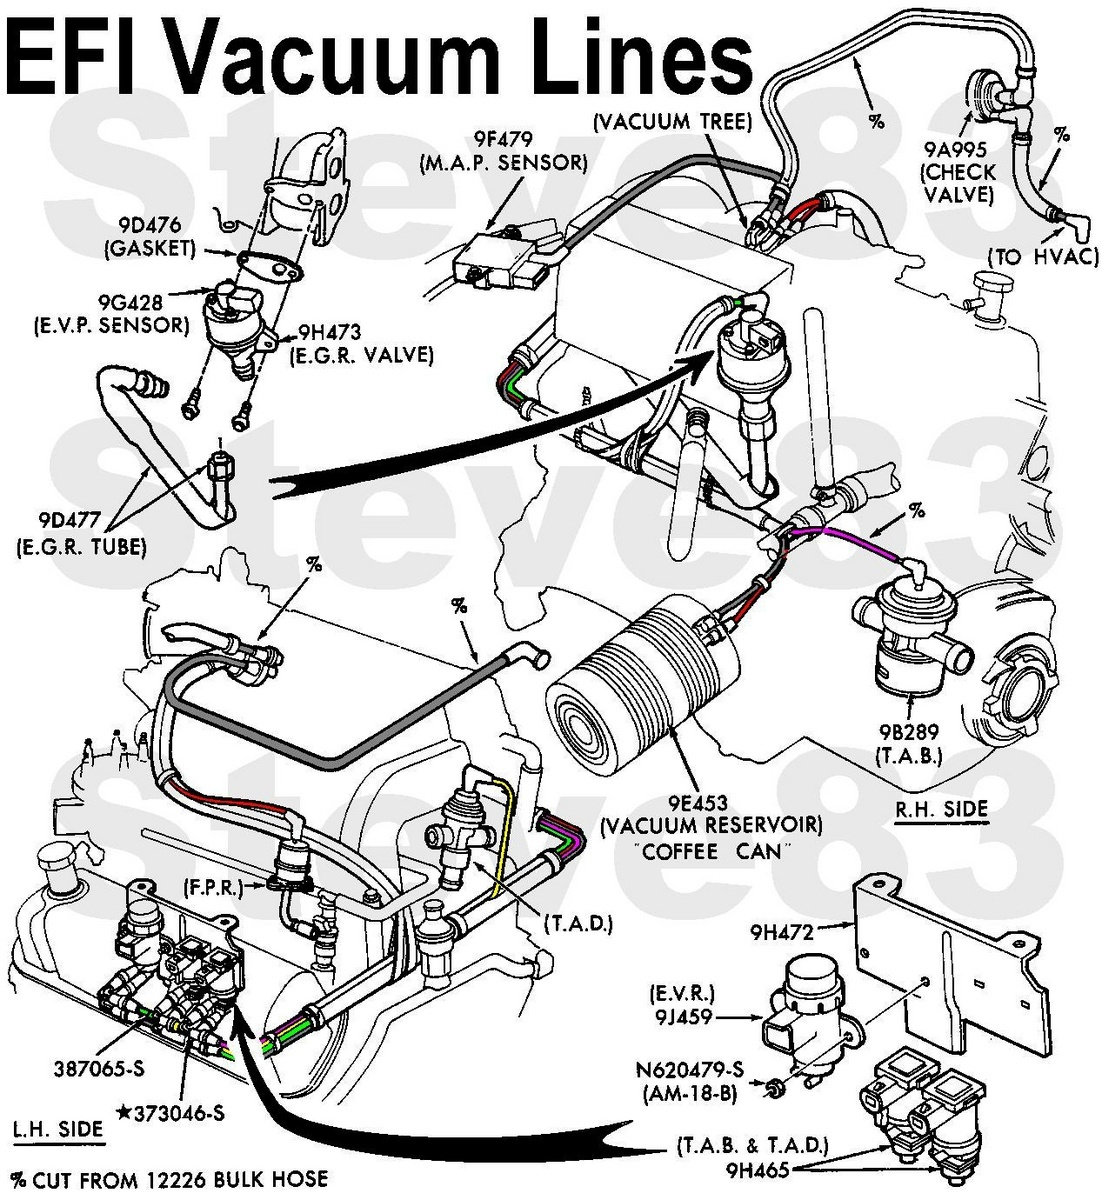 wiring diagram 2006 ford 5 4 triton pdf with 2000 F250 Fuel Line Diagram on 1988 Ford Bronco Fuel Pump Relay Location further How To Replace Power Steering Pump In 1993 Ford Explorer further 5ypvu Ford Exployer Ecm Pcm Located Ford 5 0l further 2qf  Fuse Box Diagram 2002 Ford F 150 likewise 2013 07 01 archive.